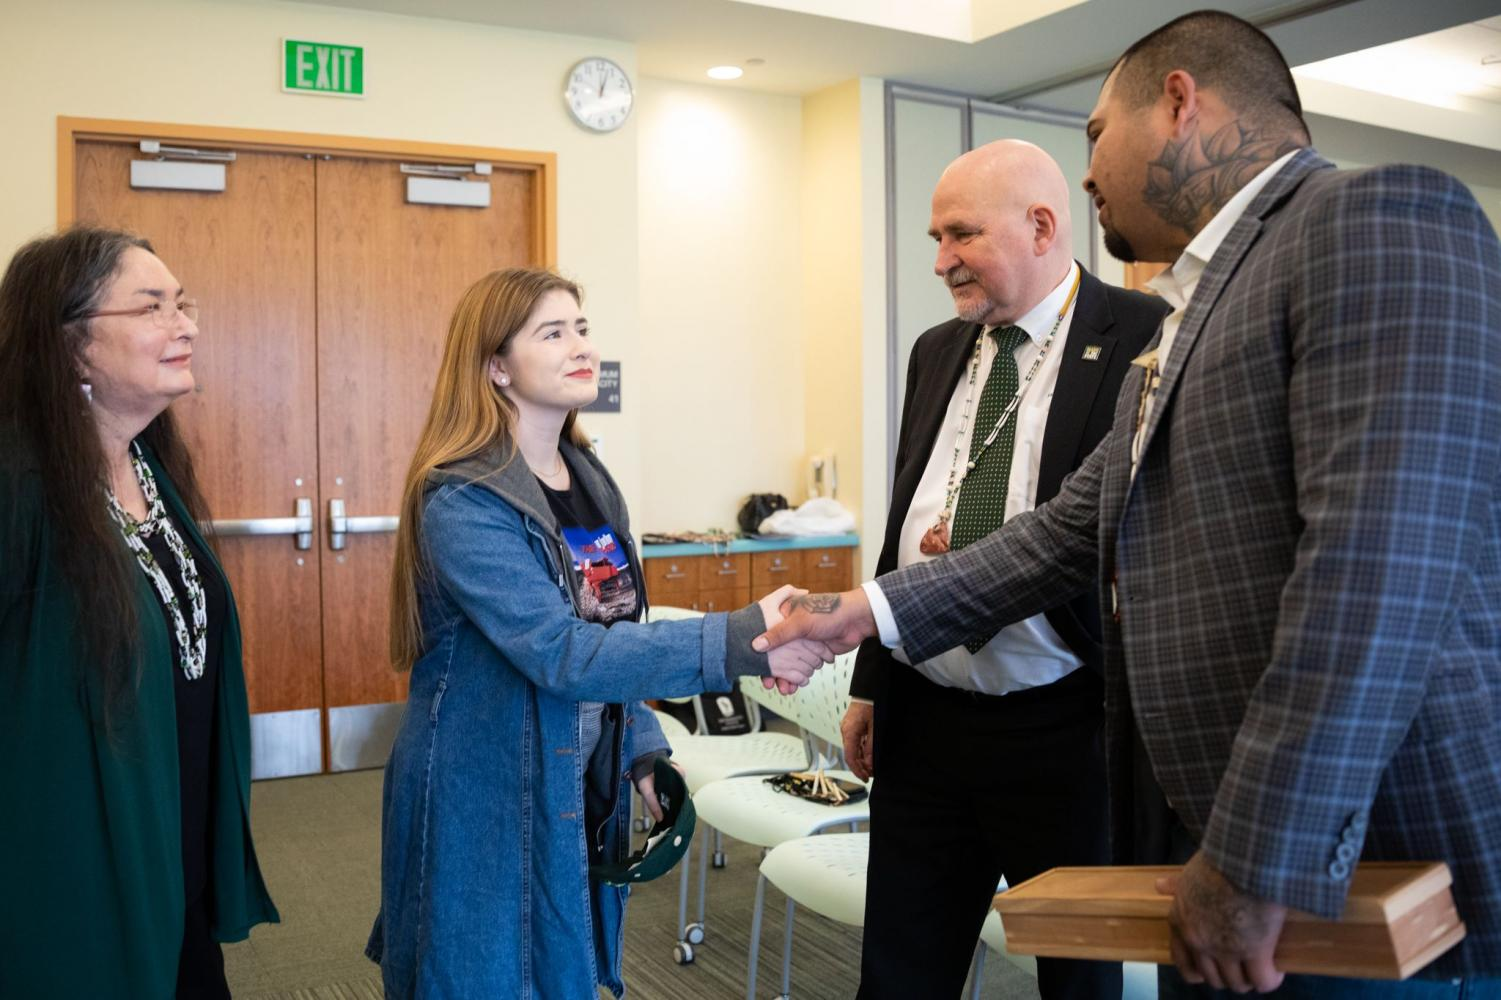 Sac State scholarship recipient Jordan Hernandez, shakes hands with Tribal Treasurer Matthew Lowell Jr. on March 6. On that day, the Yocha Dehe Wintun Nation announced their $750,000 donation to the Native American program at Sac State.